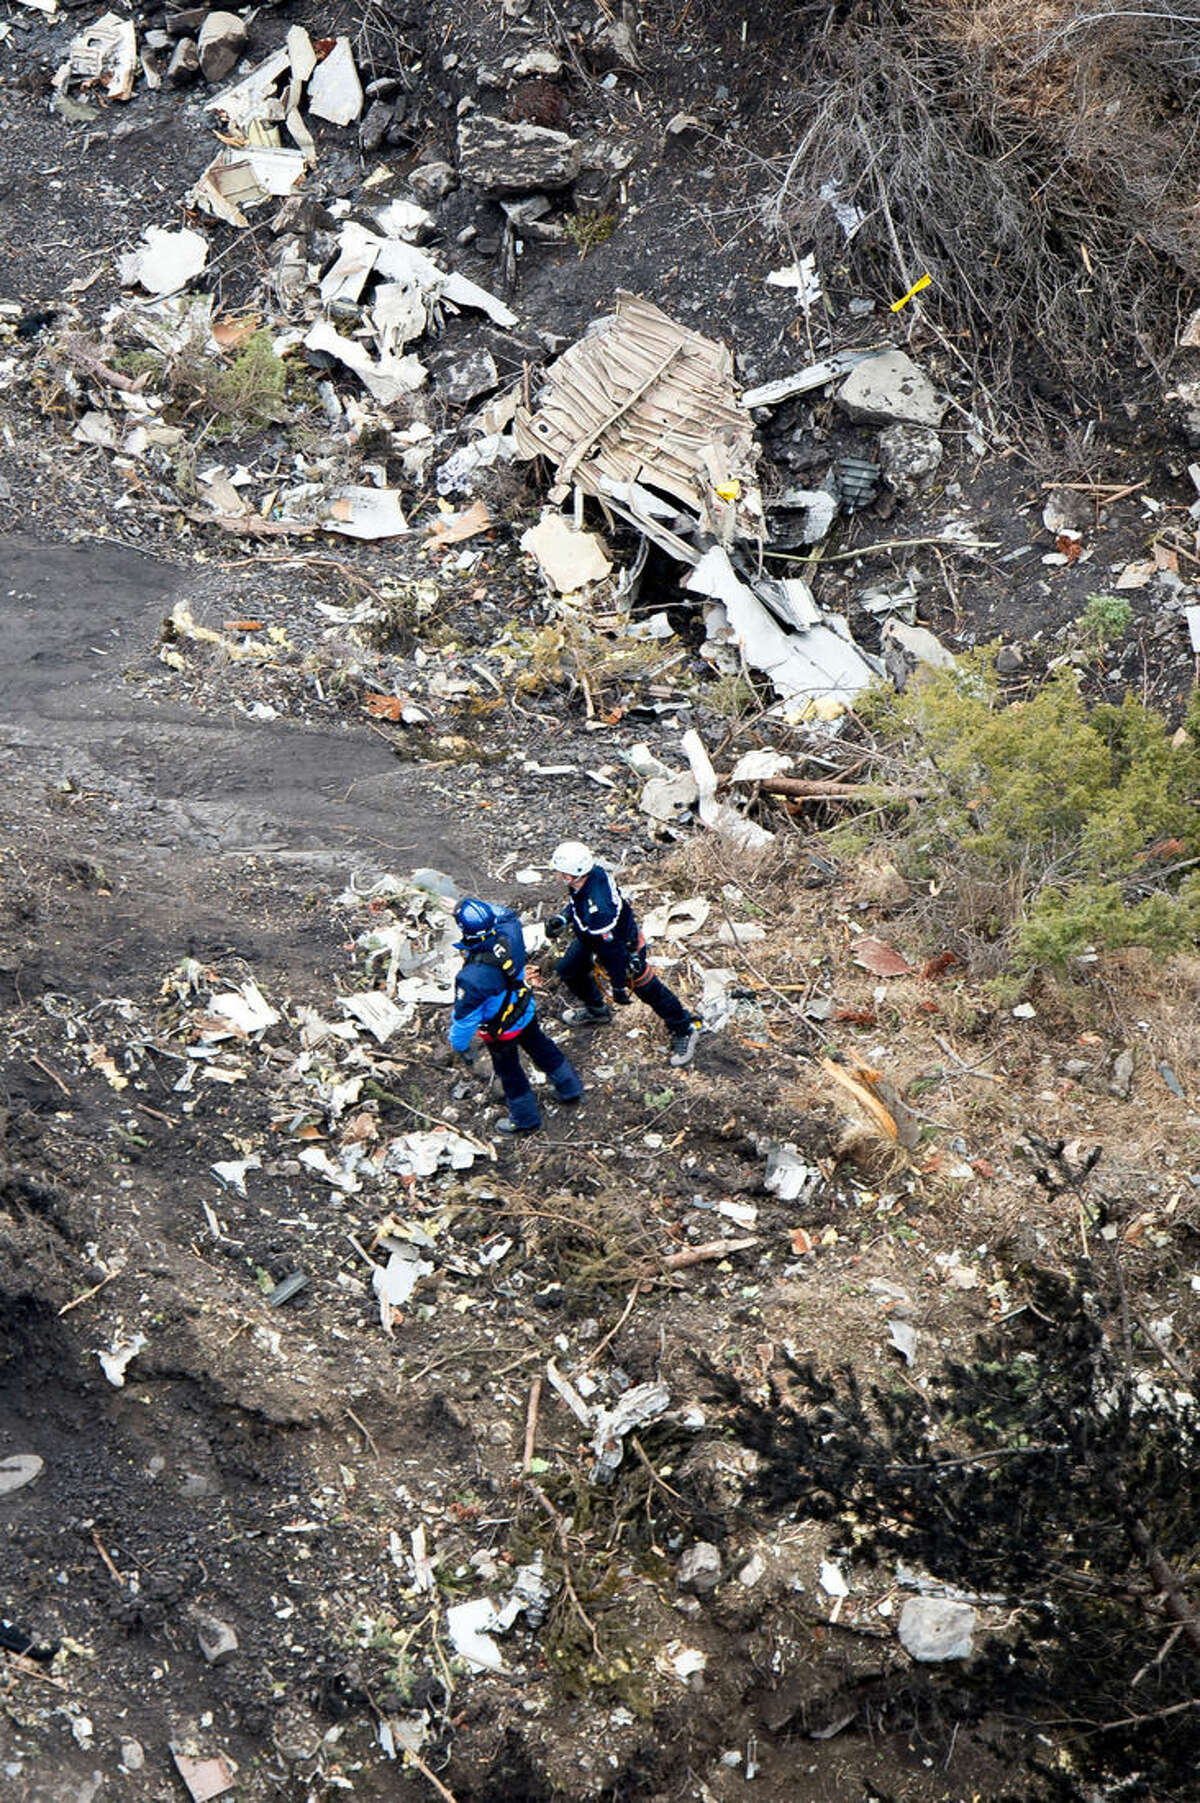 This photo provided by the Gendarmerie Nationale shows rescue workers investigating on the crash site near Seyne-les-Alpes, French Alps, Wednesday, March 25, 2015. French investigators cracked open the badly damaged black box of the Germanwings plane on Wednesday and sealed off the rugged Alpine crash site where 150 people died when their plane on a flight from Barcelona, Spain to Duesseldorf, Germany, slammed into a mountain. (AP Photo/Fabrice Balsamo, Gendarmerie Nationale)